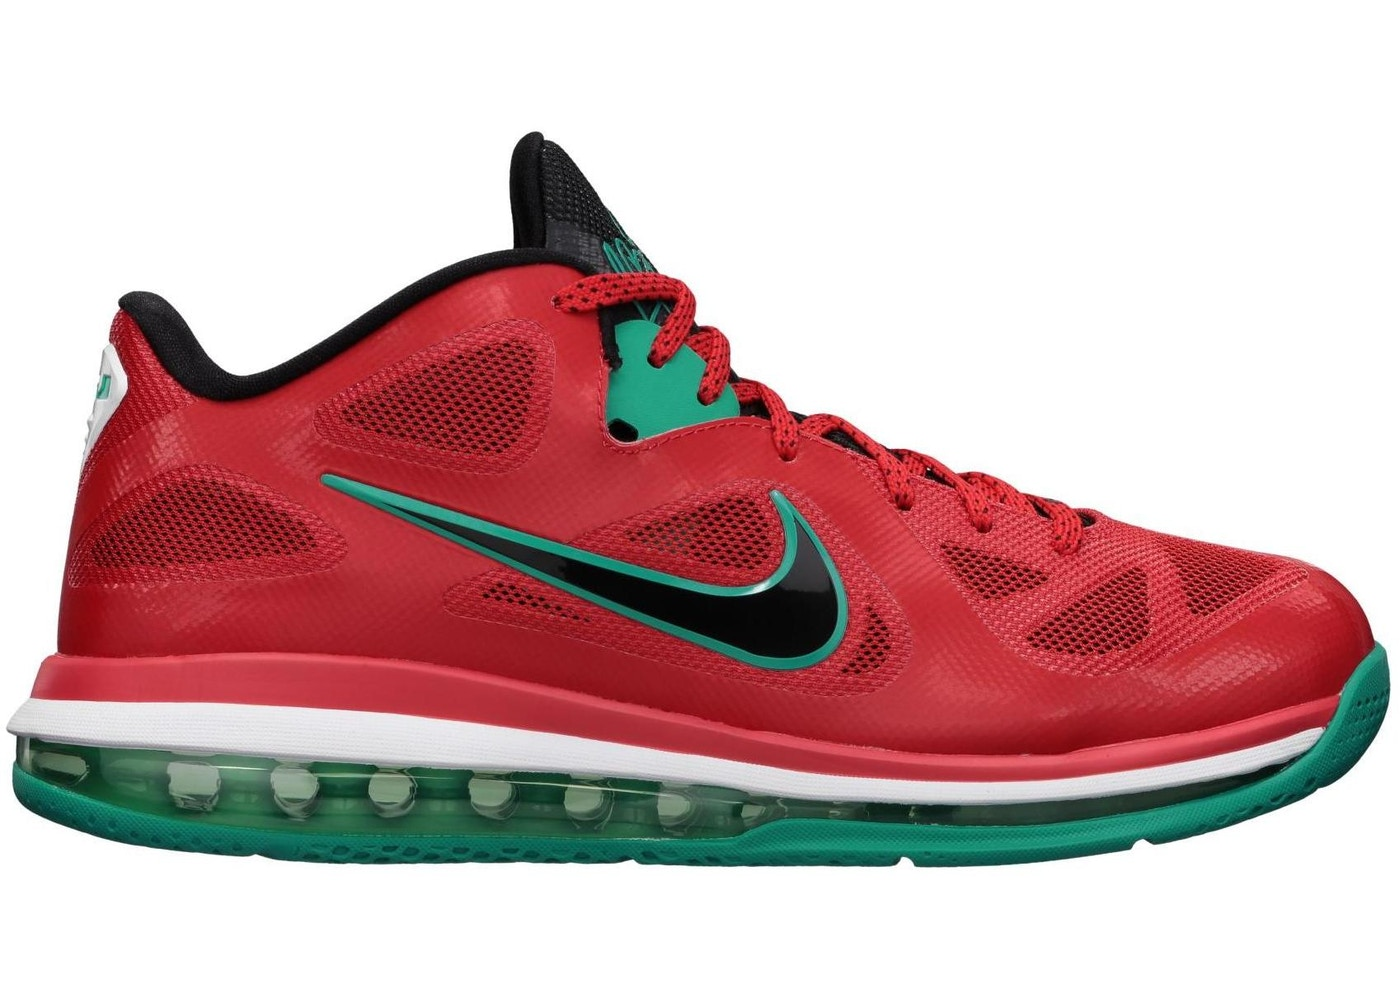 4e47d46df4469 LeBron 9 Low Liverpool - 510811-601